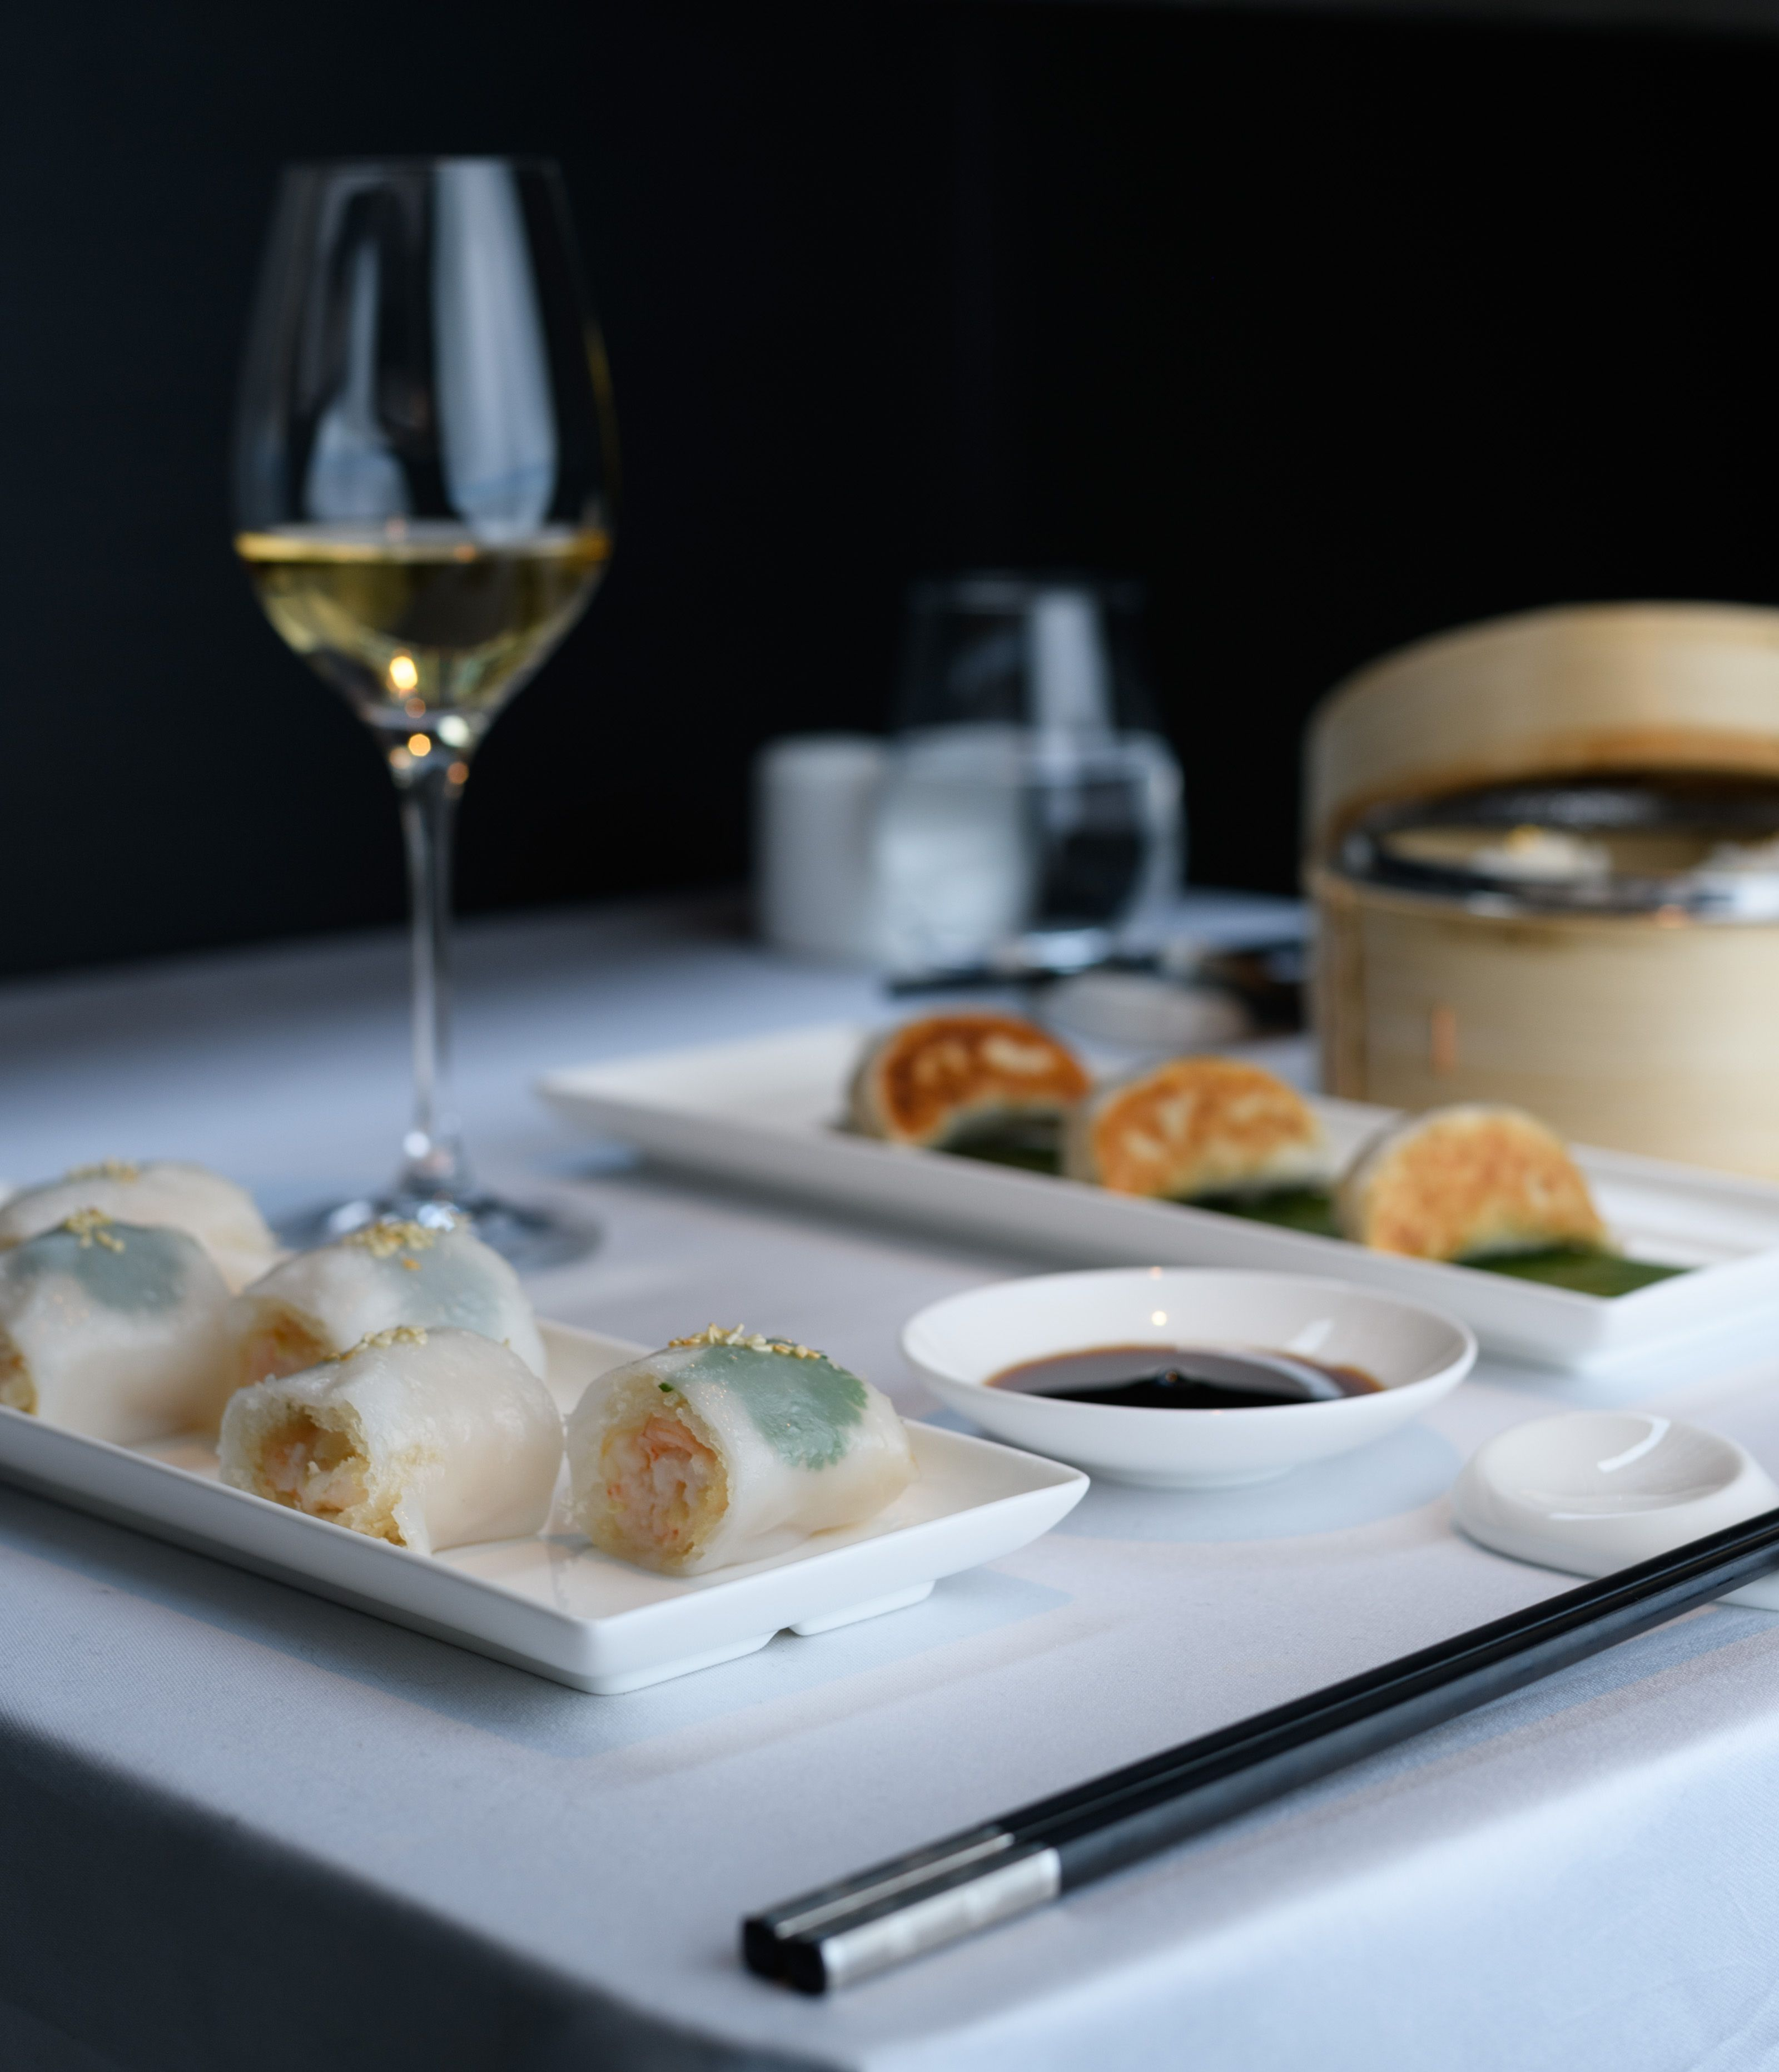 What We're Eating This Week: Xiao Long Bao, Custard Fritters & Paté For Breakfast